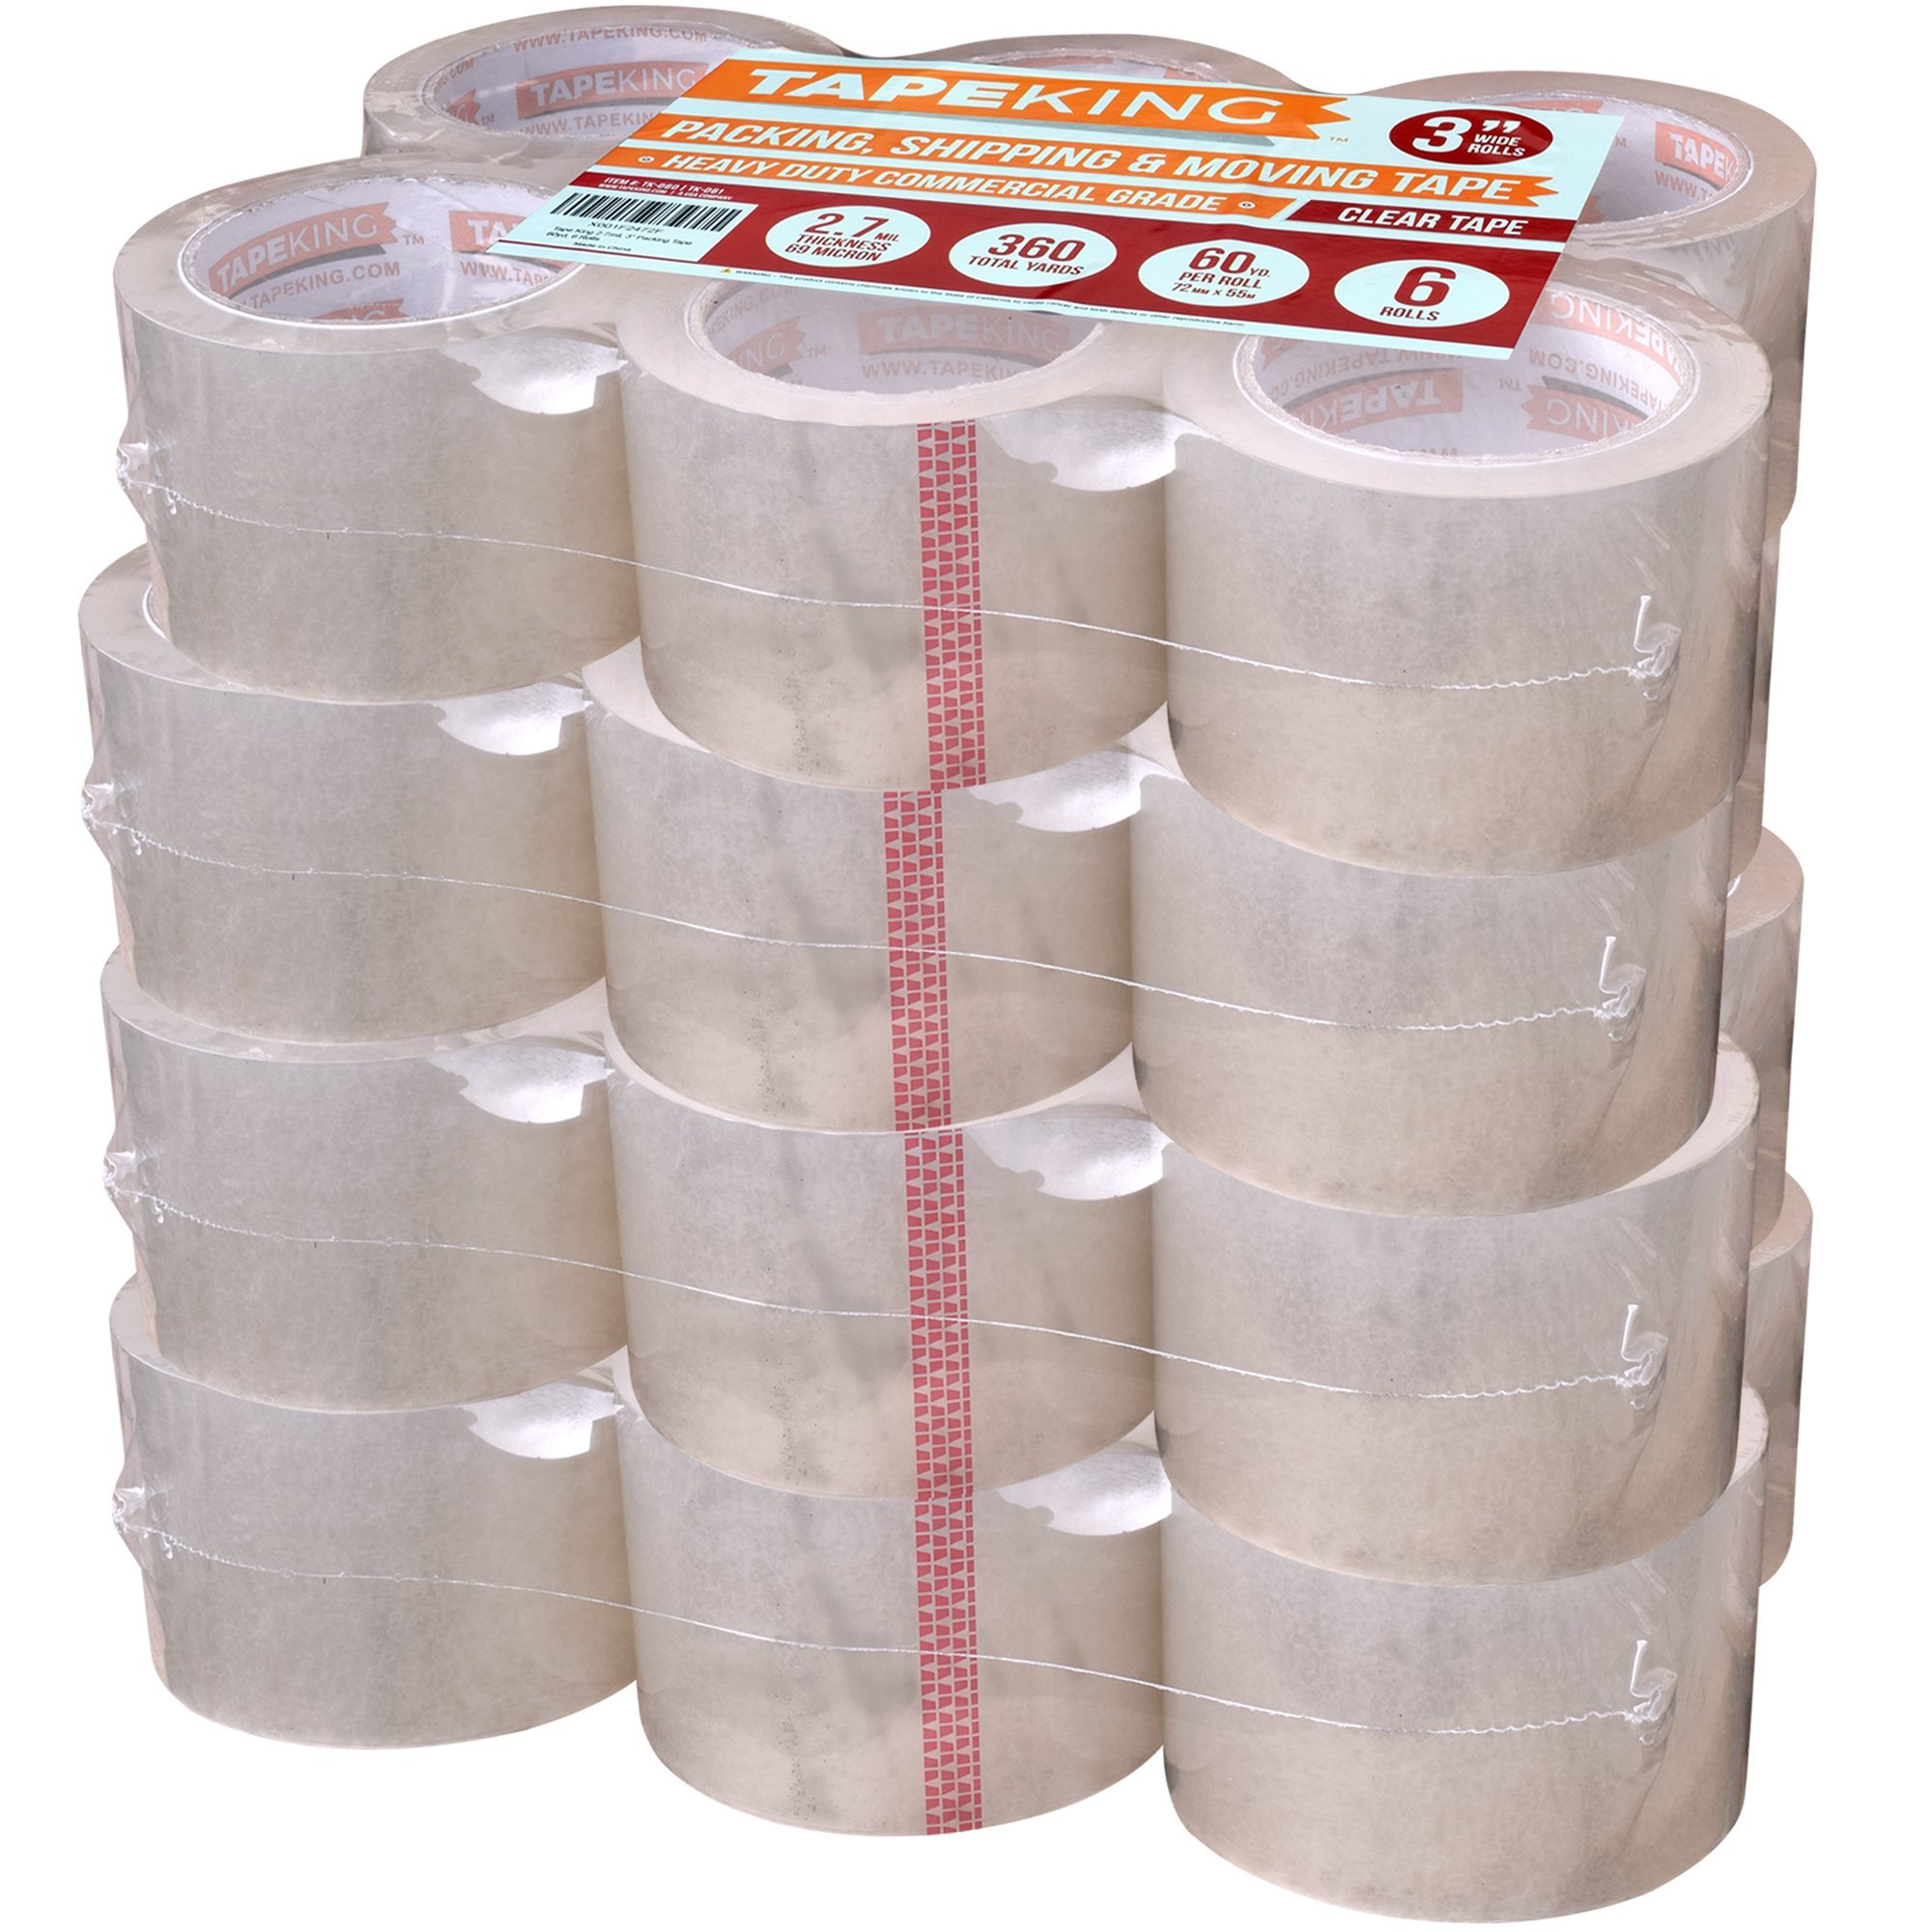 Tape King Clear Packing Tape 3 Inch Wide (Case of 24 Rolls) - 60 Yards Per Refill Roll, (2.7mil Thick) Strong Sealing Adhesive Industrial Depot Tapes for Moving, Packaging, Shipping, Office & Storage by Tape King